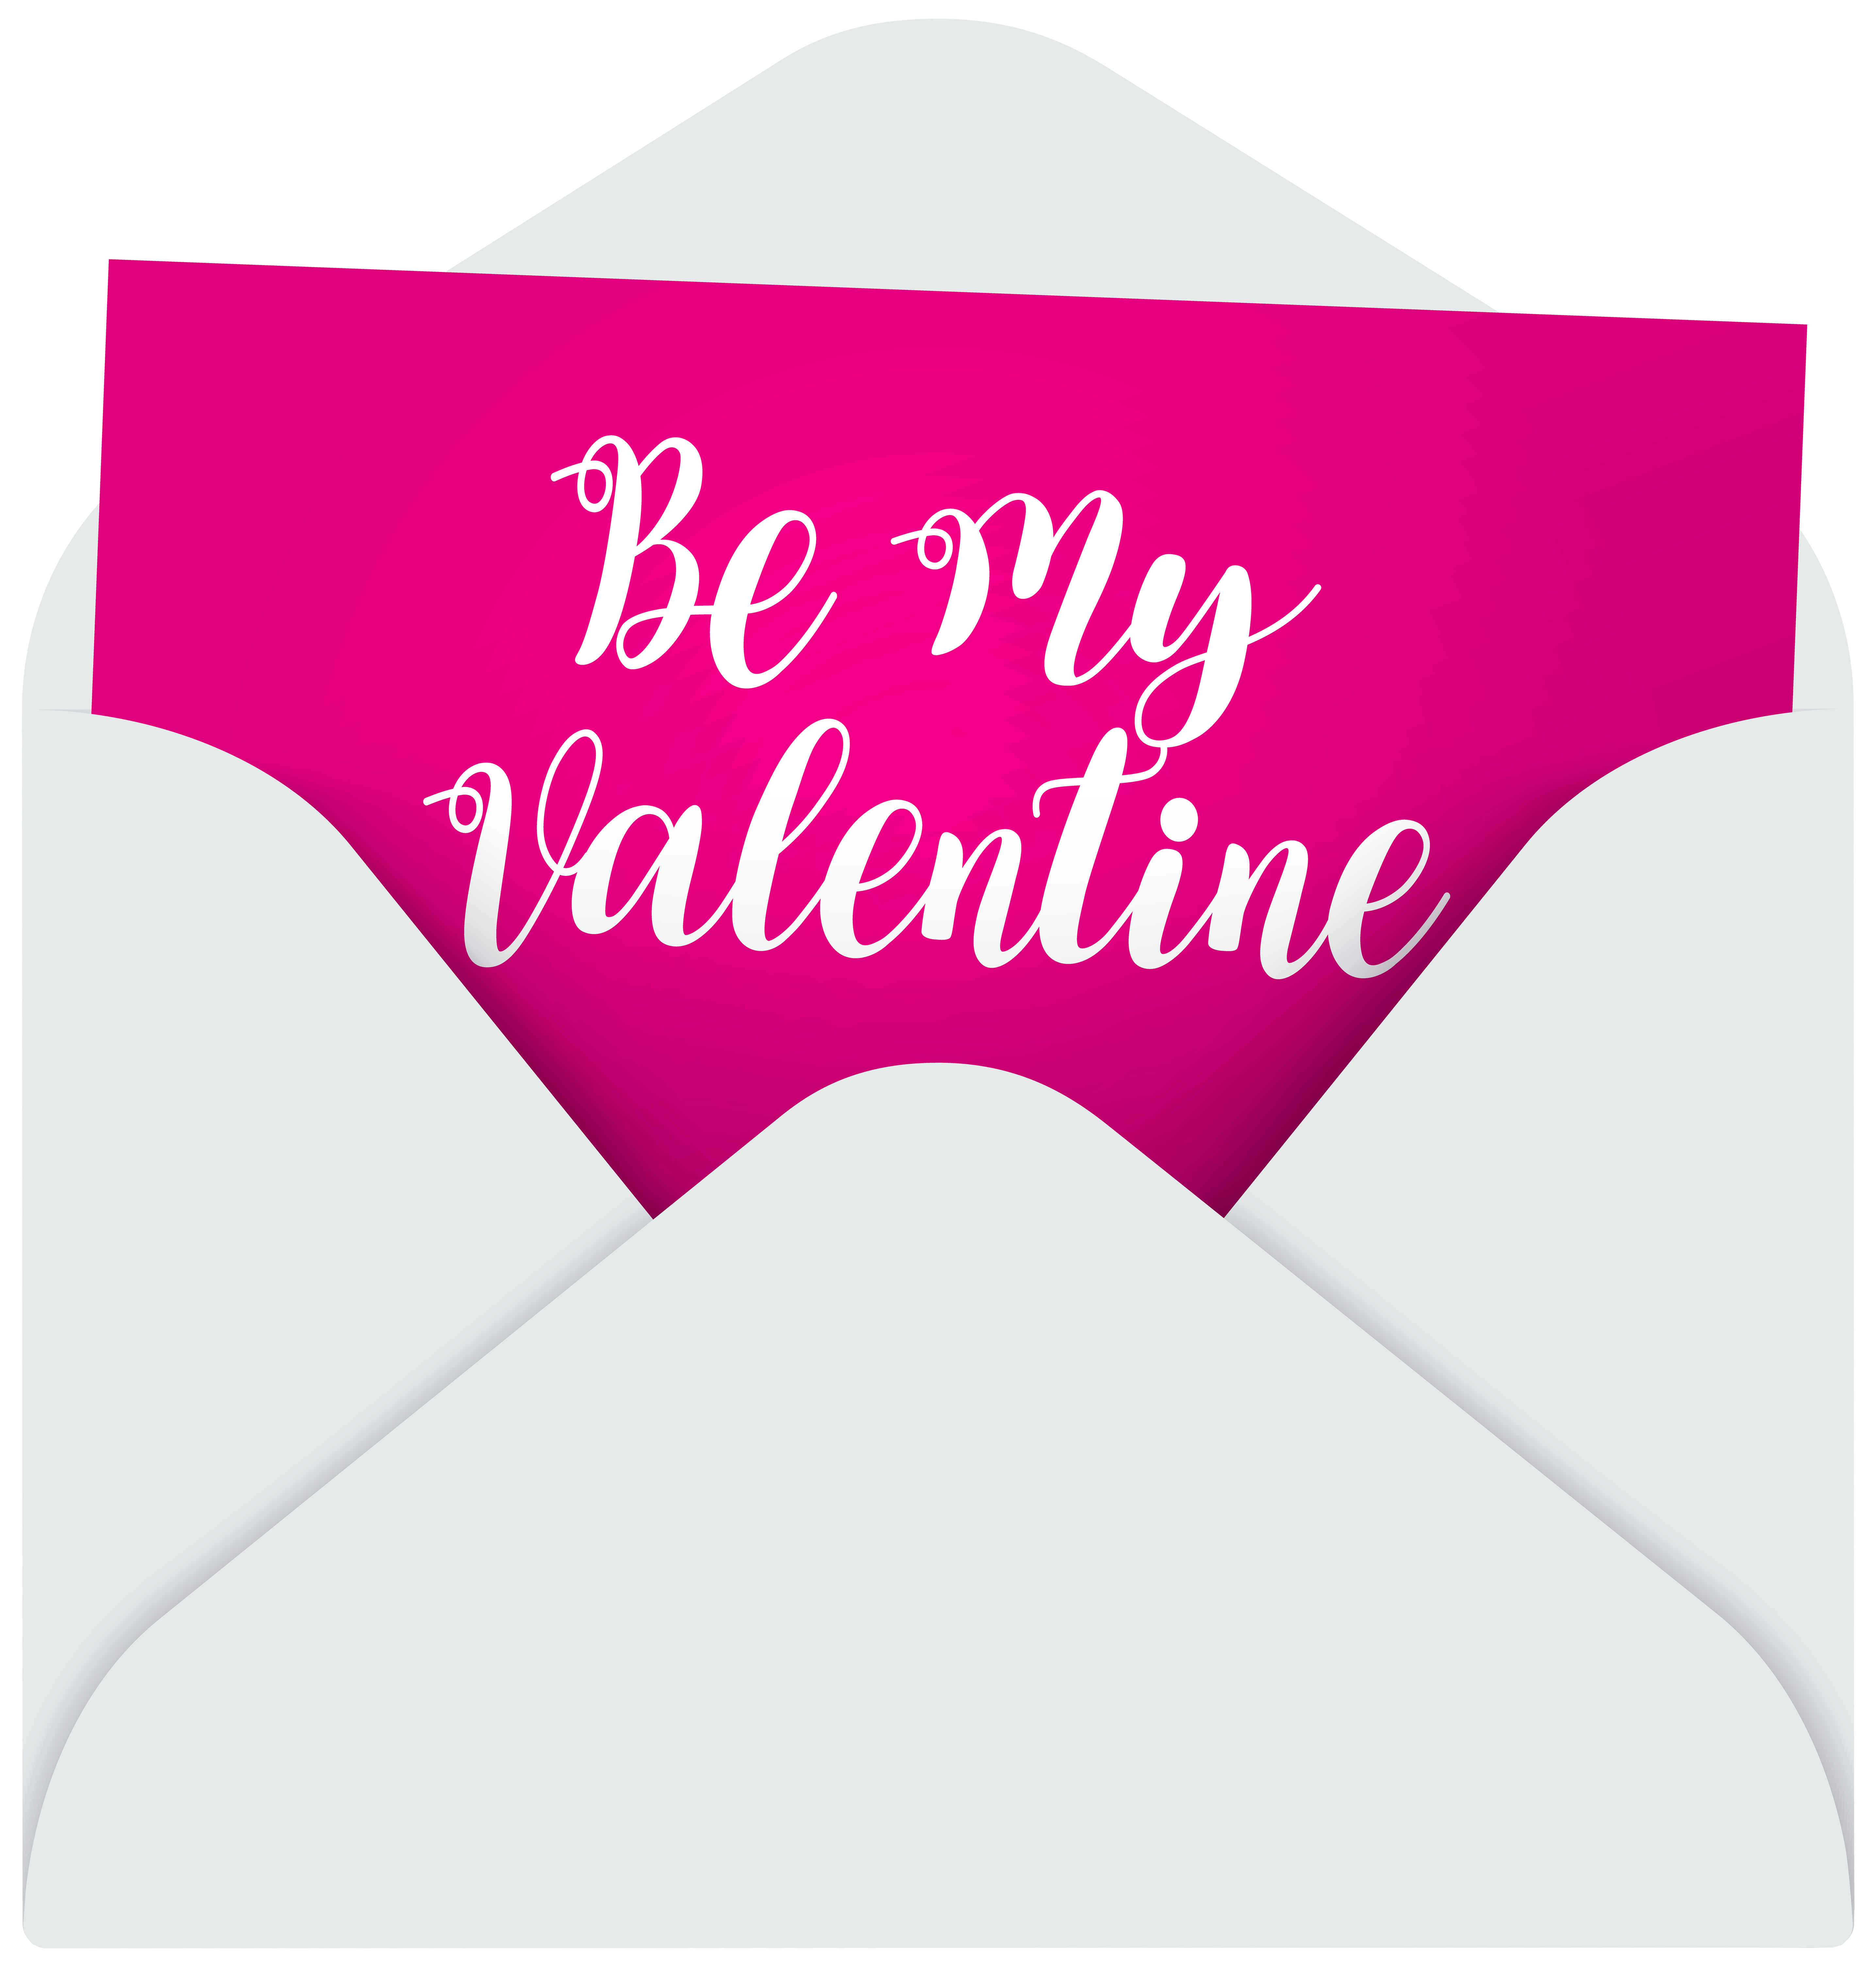 Be My Valentine Transparent PNG Image.